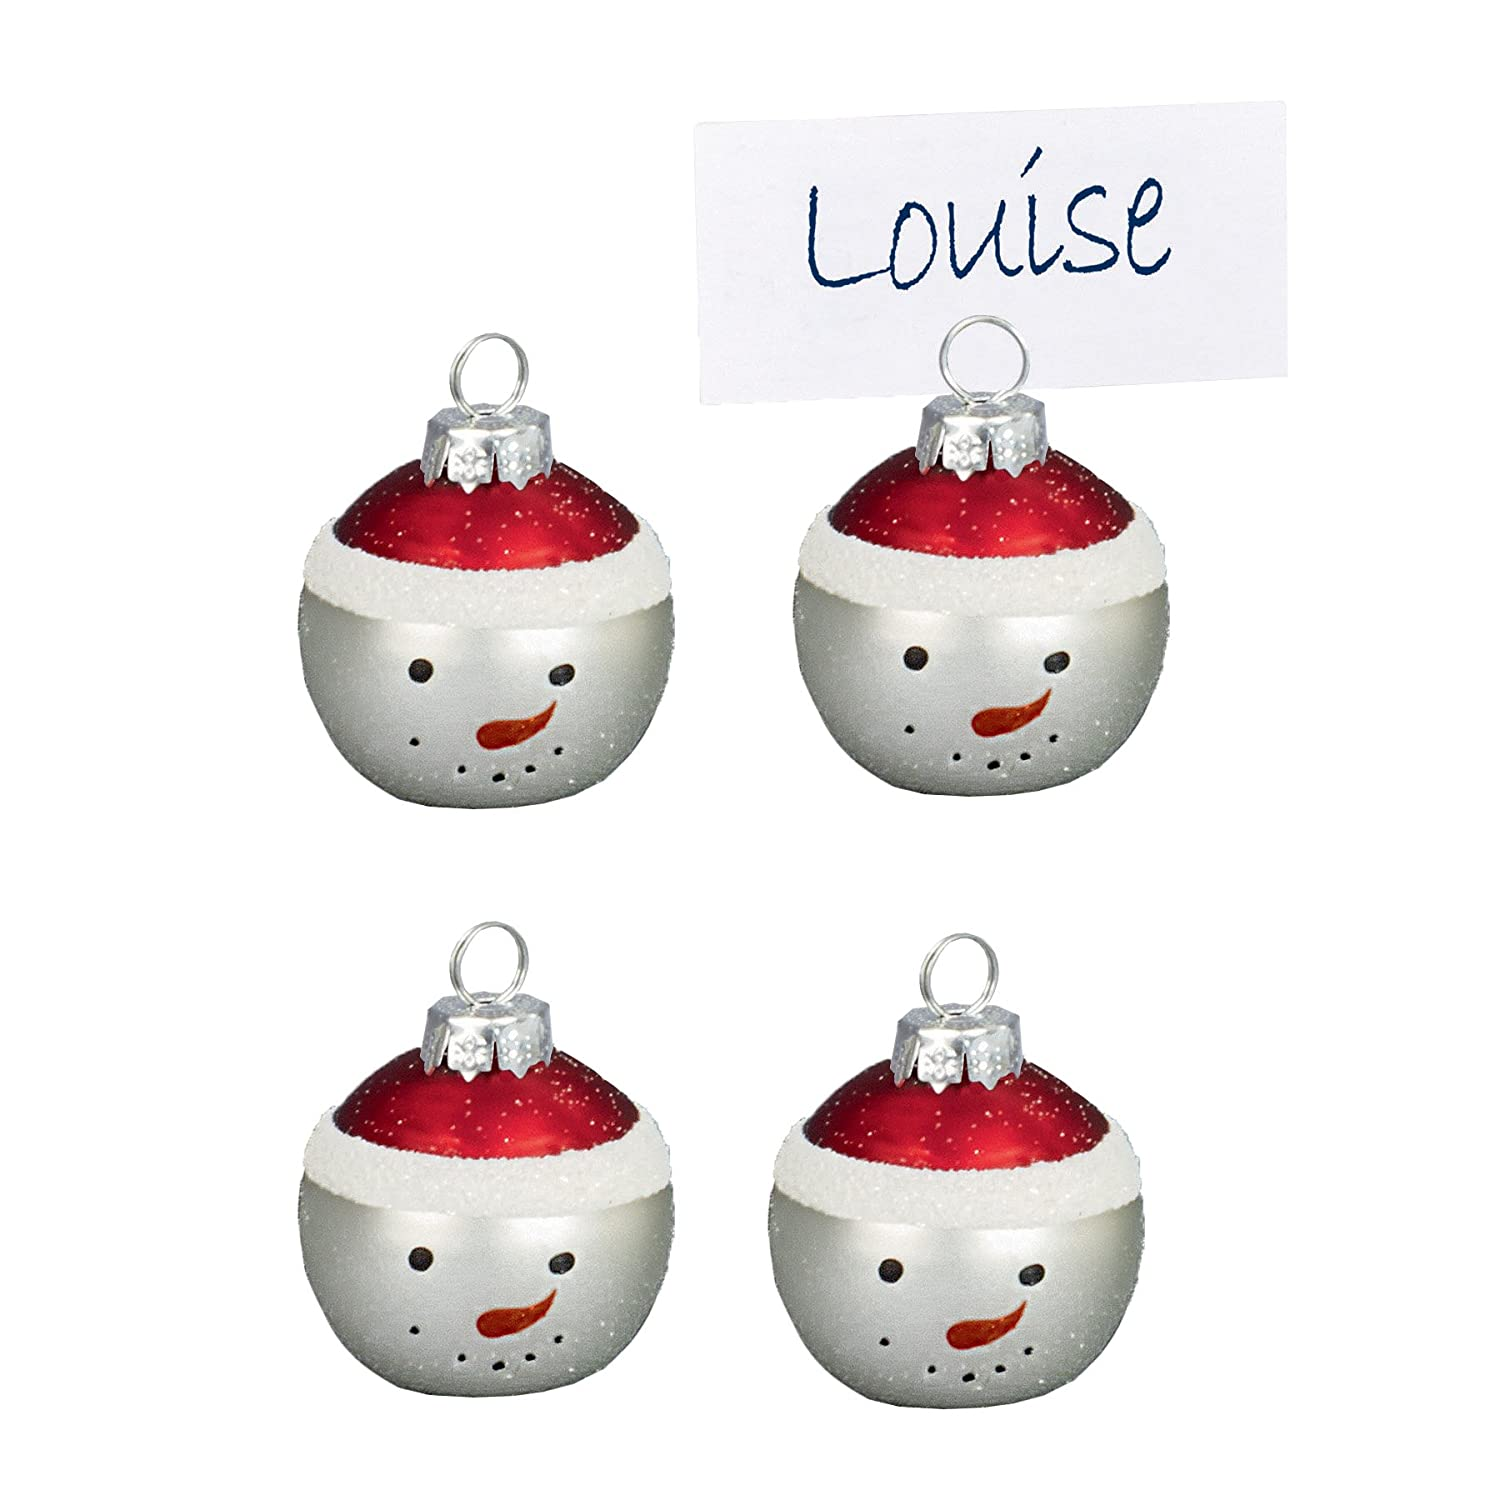 Christmas Set of 4 Glass Bauble Table Name Place Card Holder - Snowman Premier Decorations